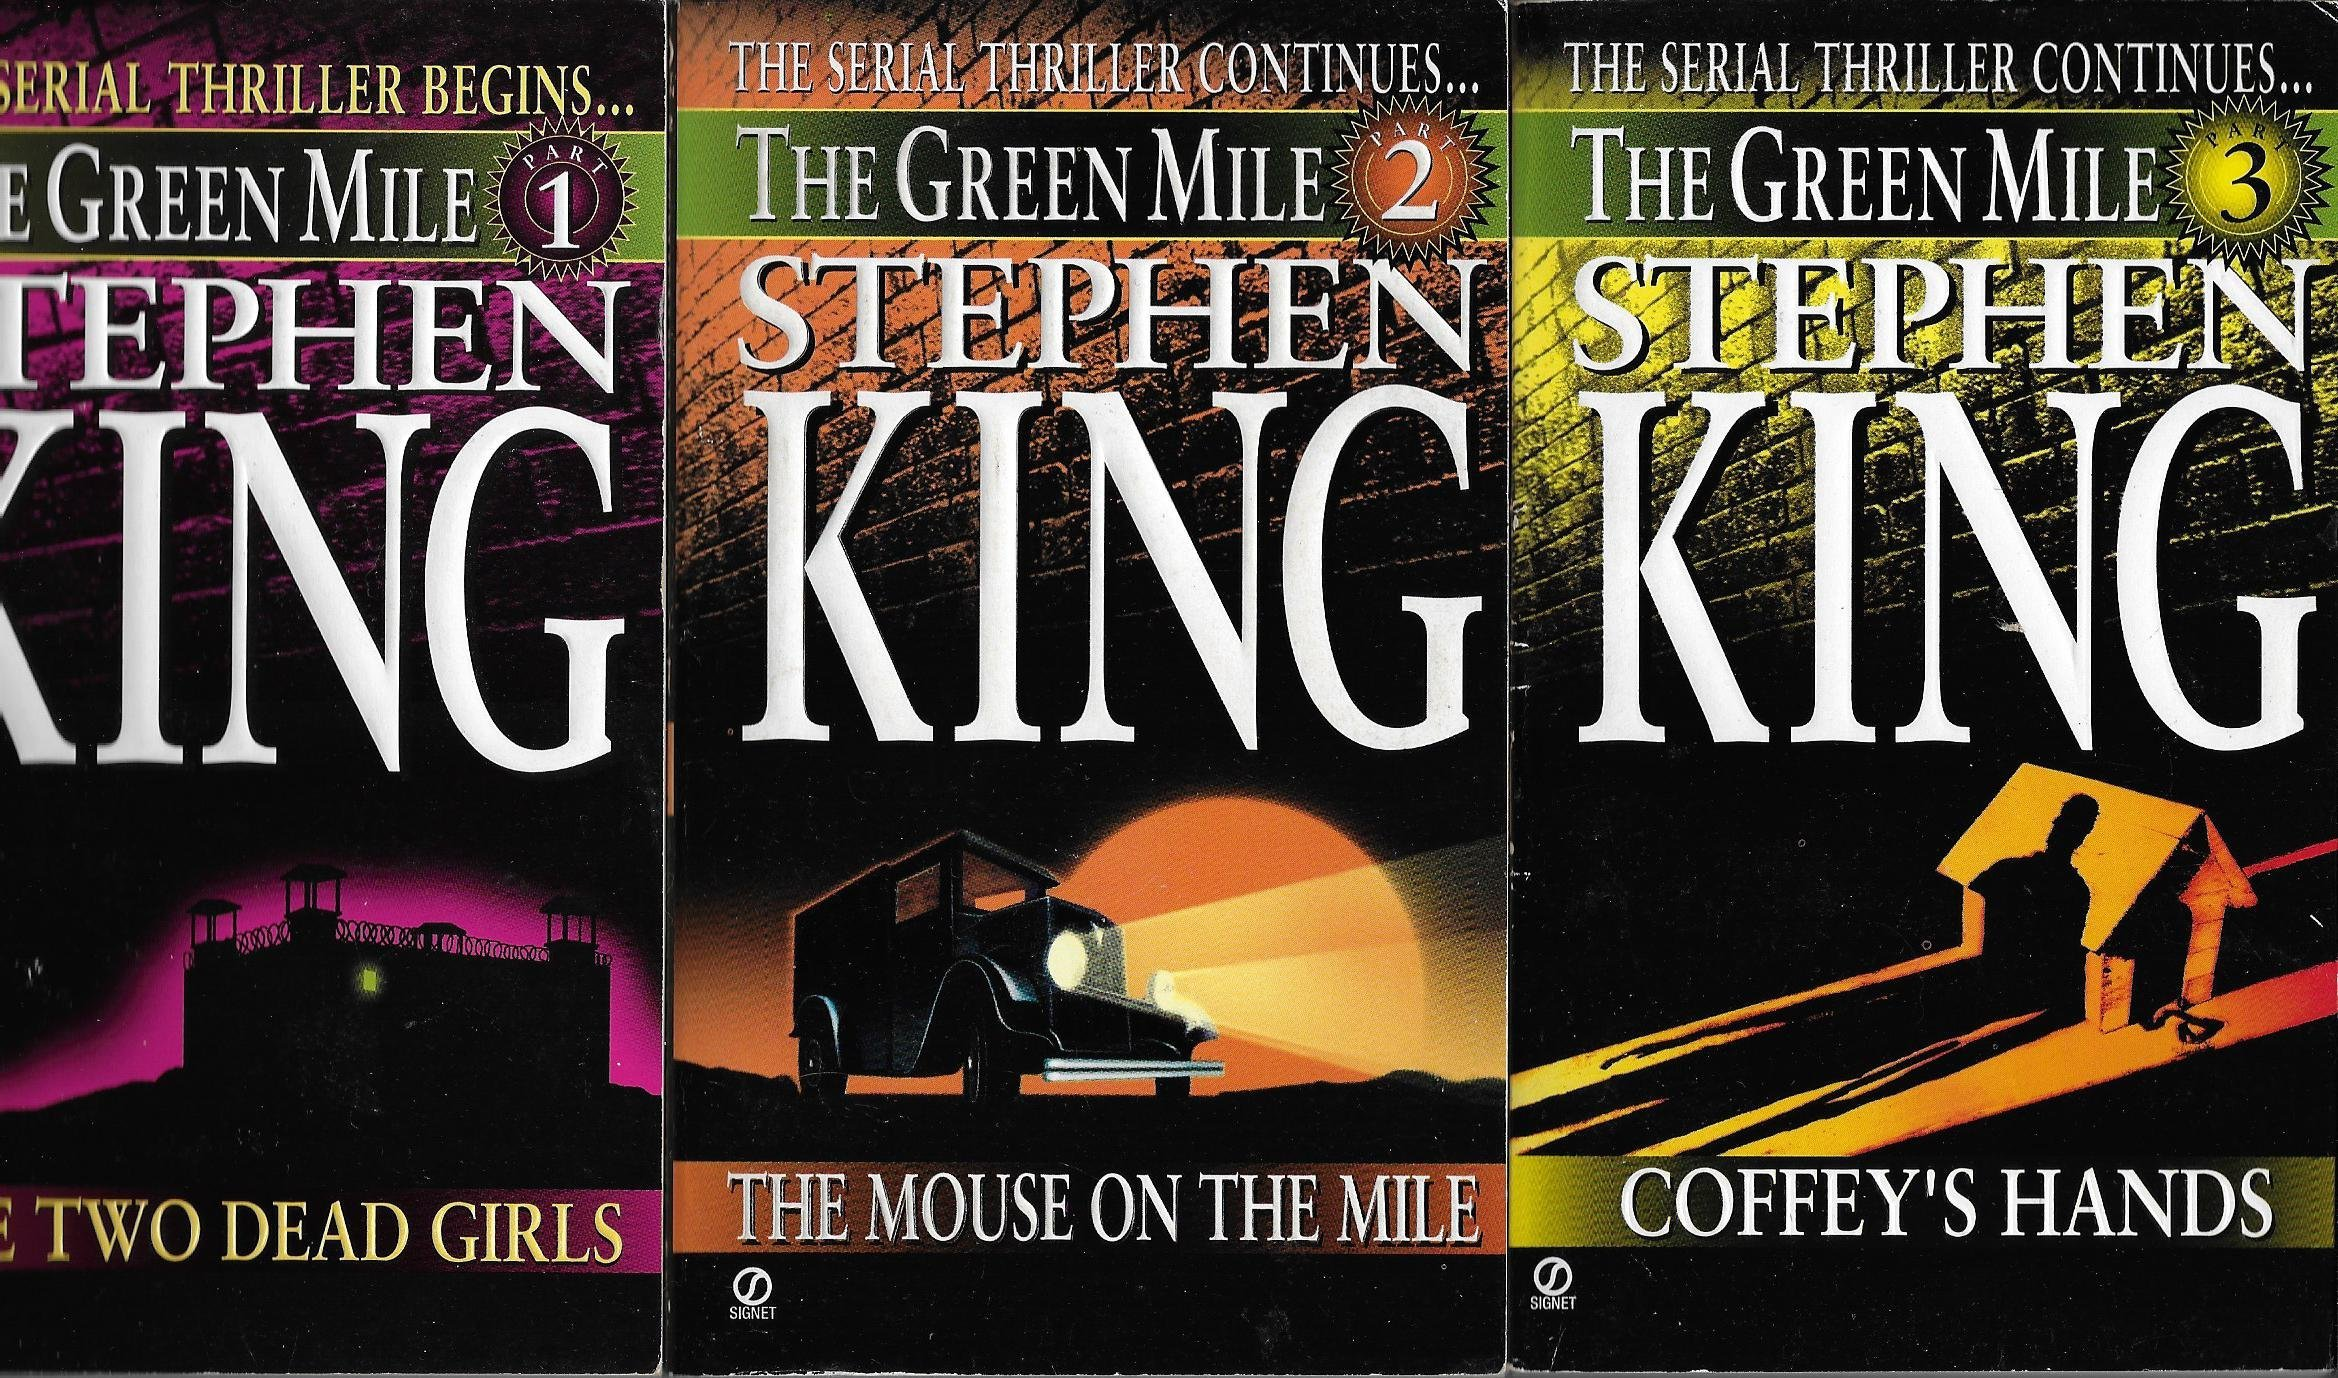 the green mile serial novel set books stephen king  the green mile serial novel set books 1 6 stephen king com books